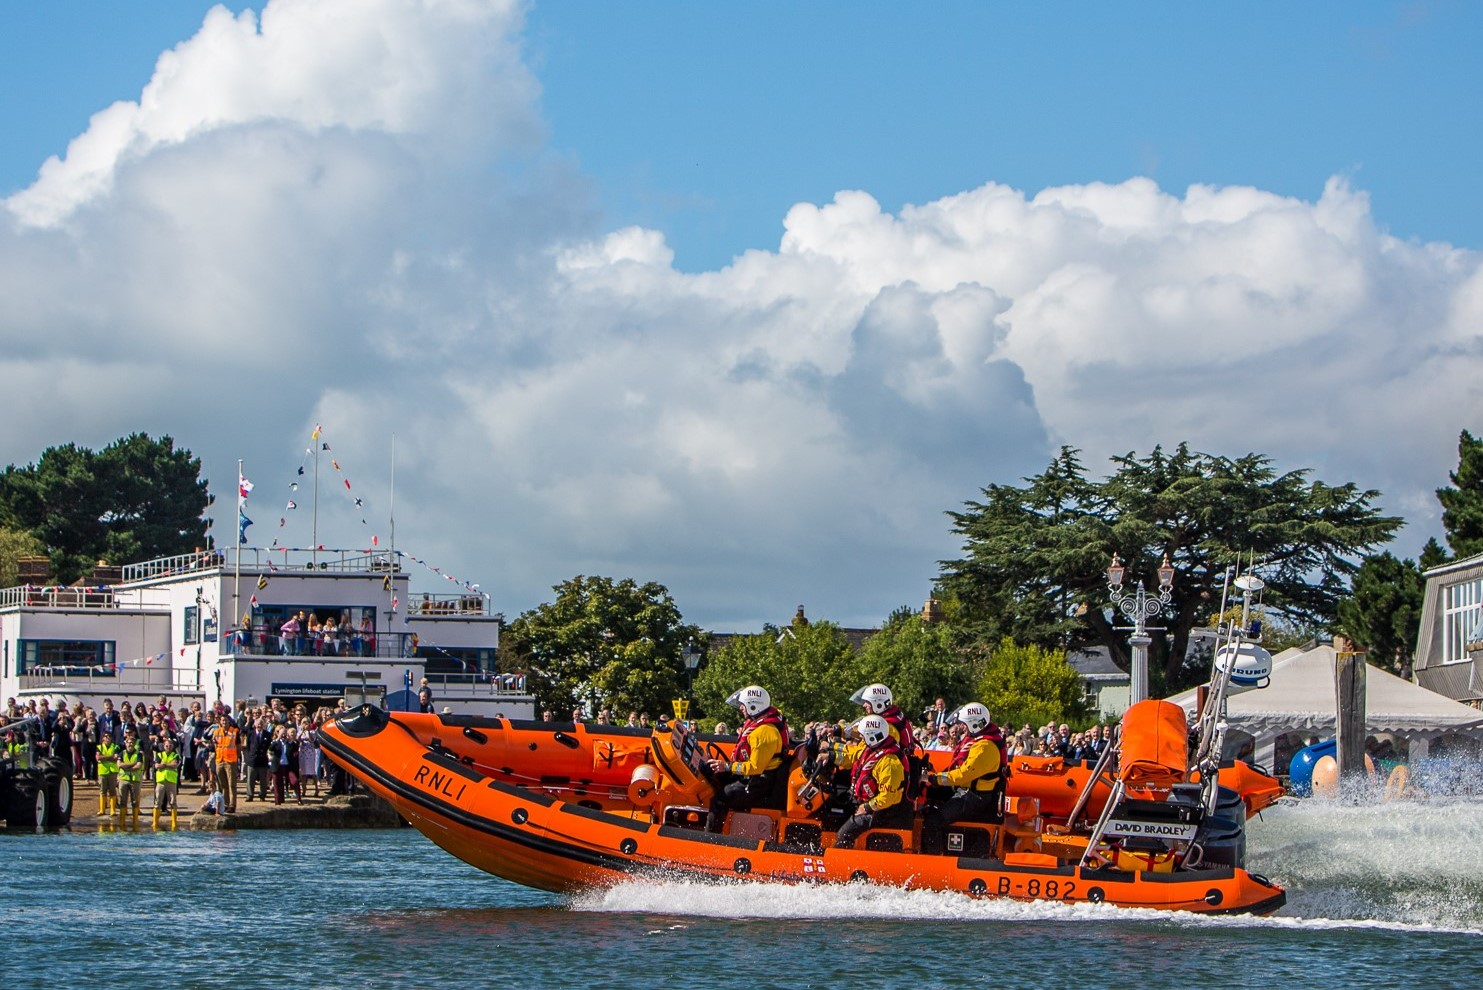 Lymington RNLI Lifeboat at speed in foreground, Blue sky with fluffy clouds background